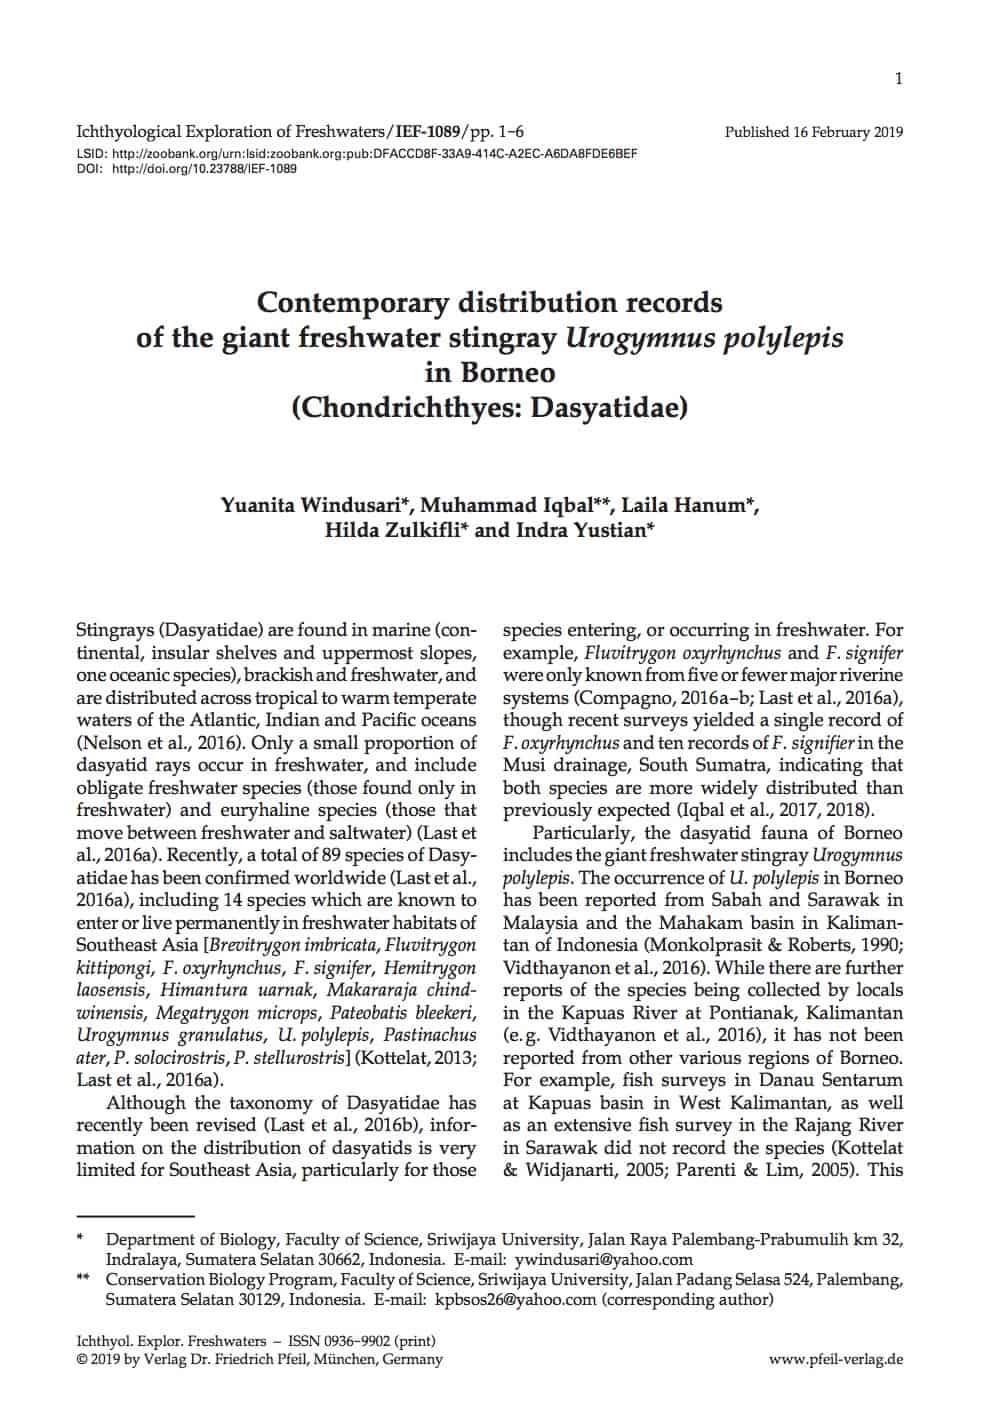 Contemporary distribution records of the giant freshwater stingray Urogymnus polylepis in Borneo (Chondrichthyes: Dasyatidae)